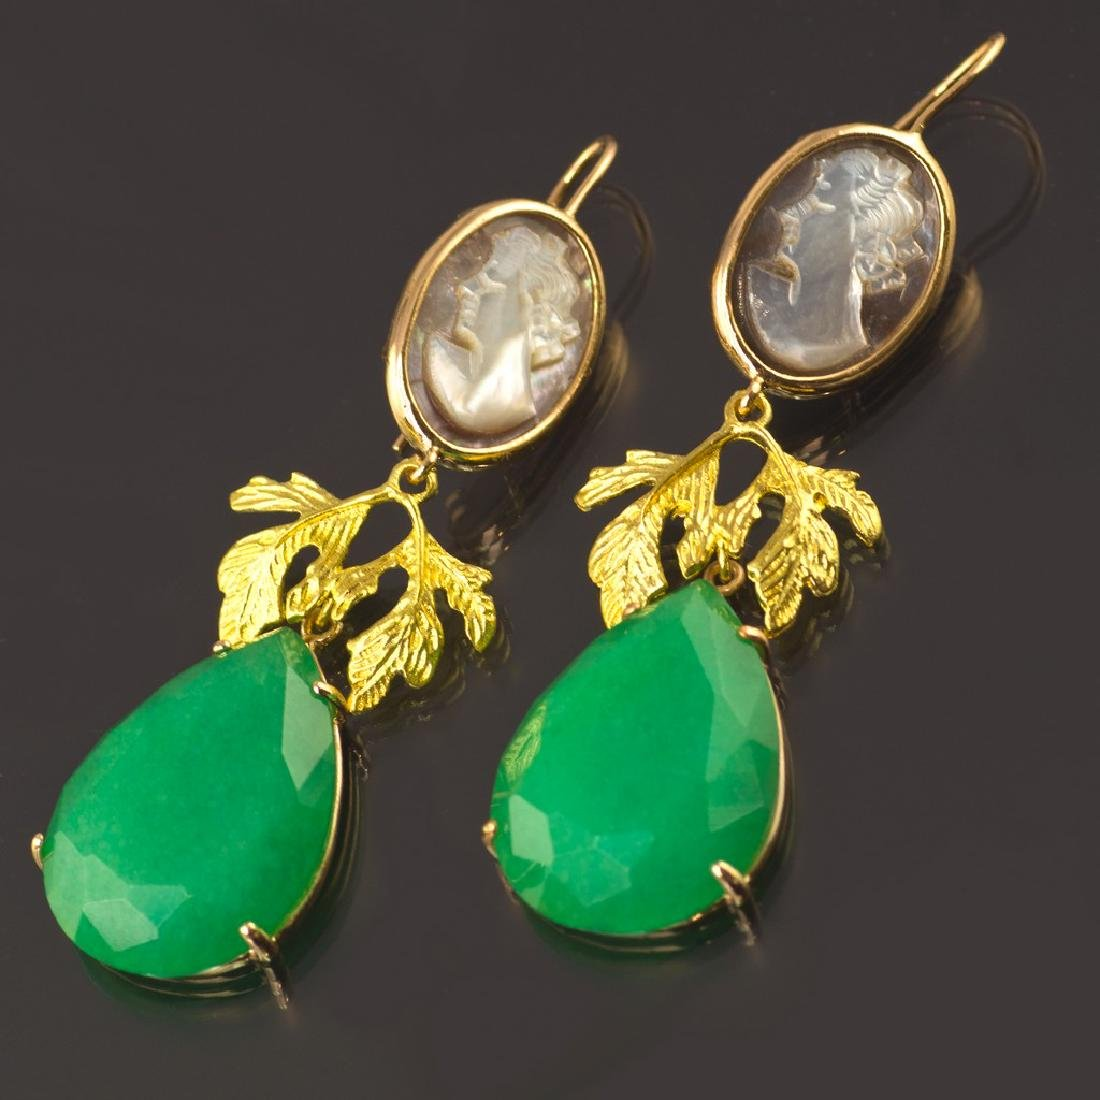 Classic Earrings with Jade and Cameo - 2